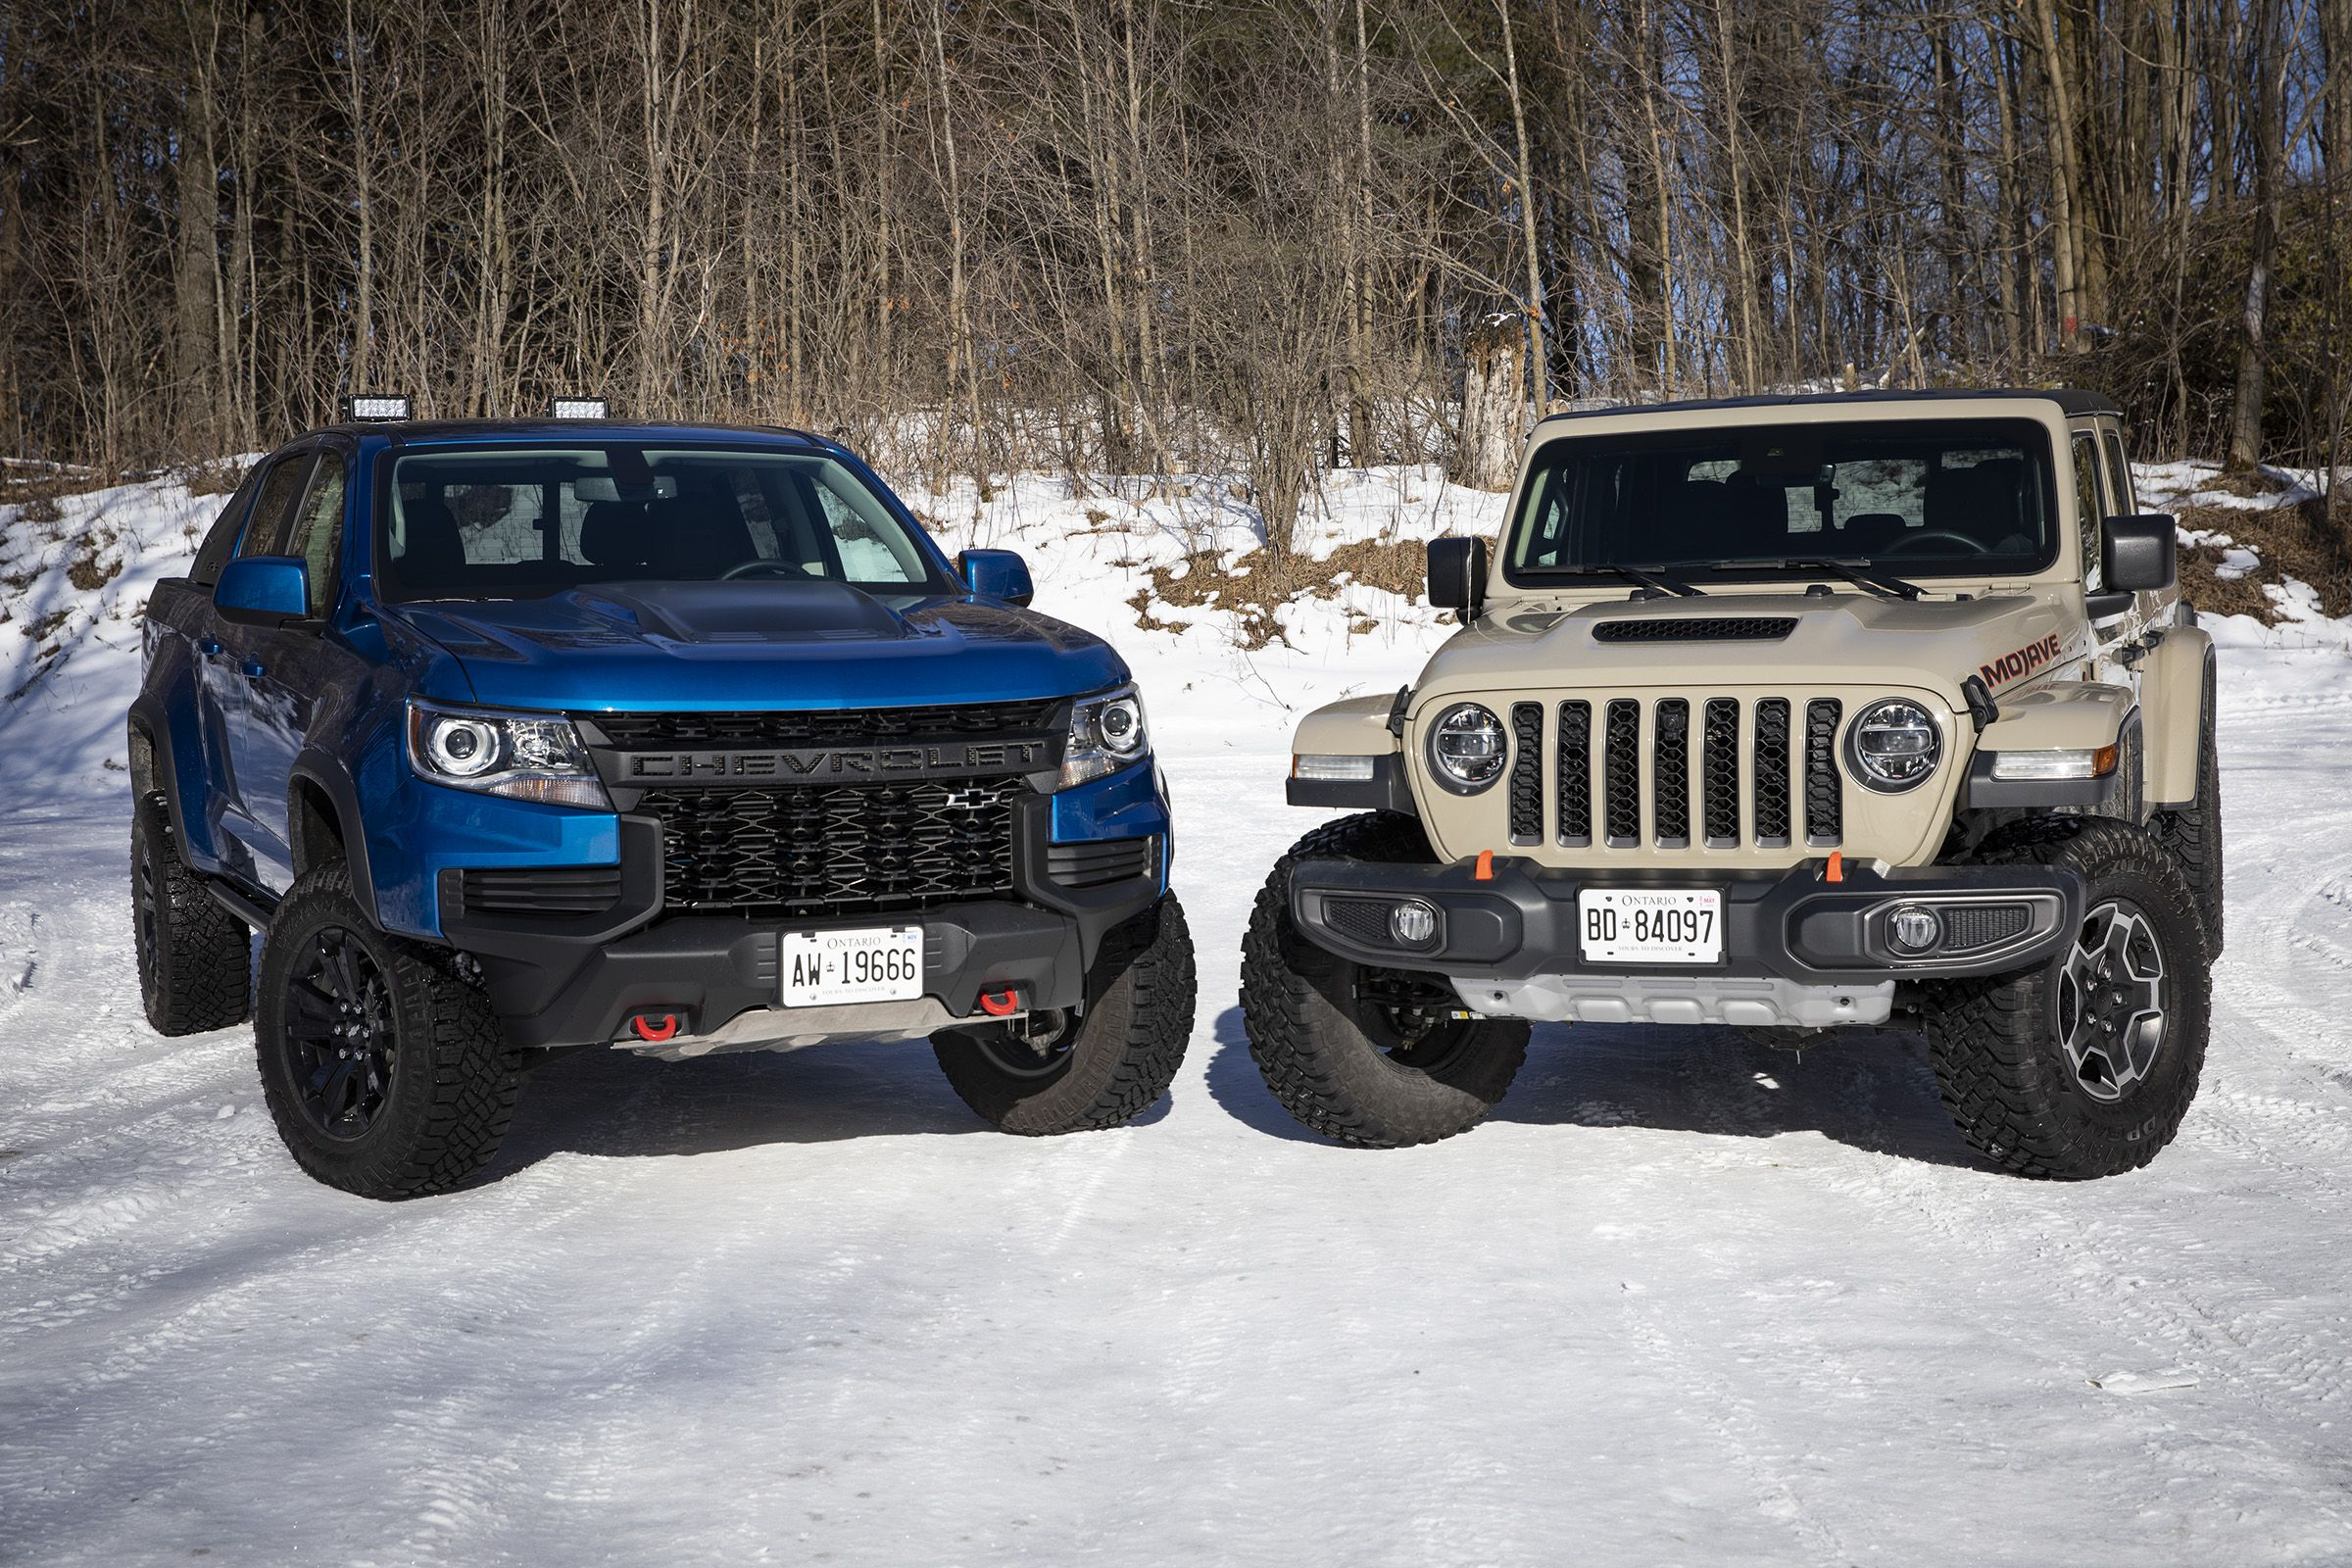 Chevrolet Colorado ZR2 vs Jeep Gladiator Mojave